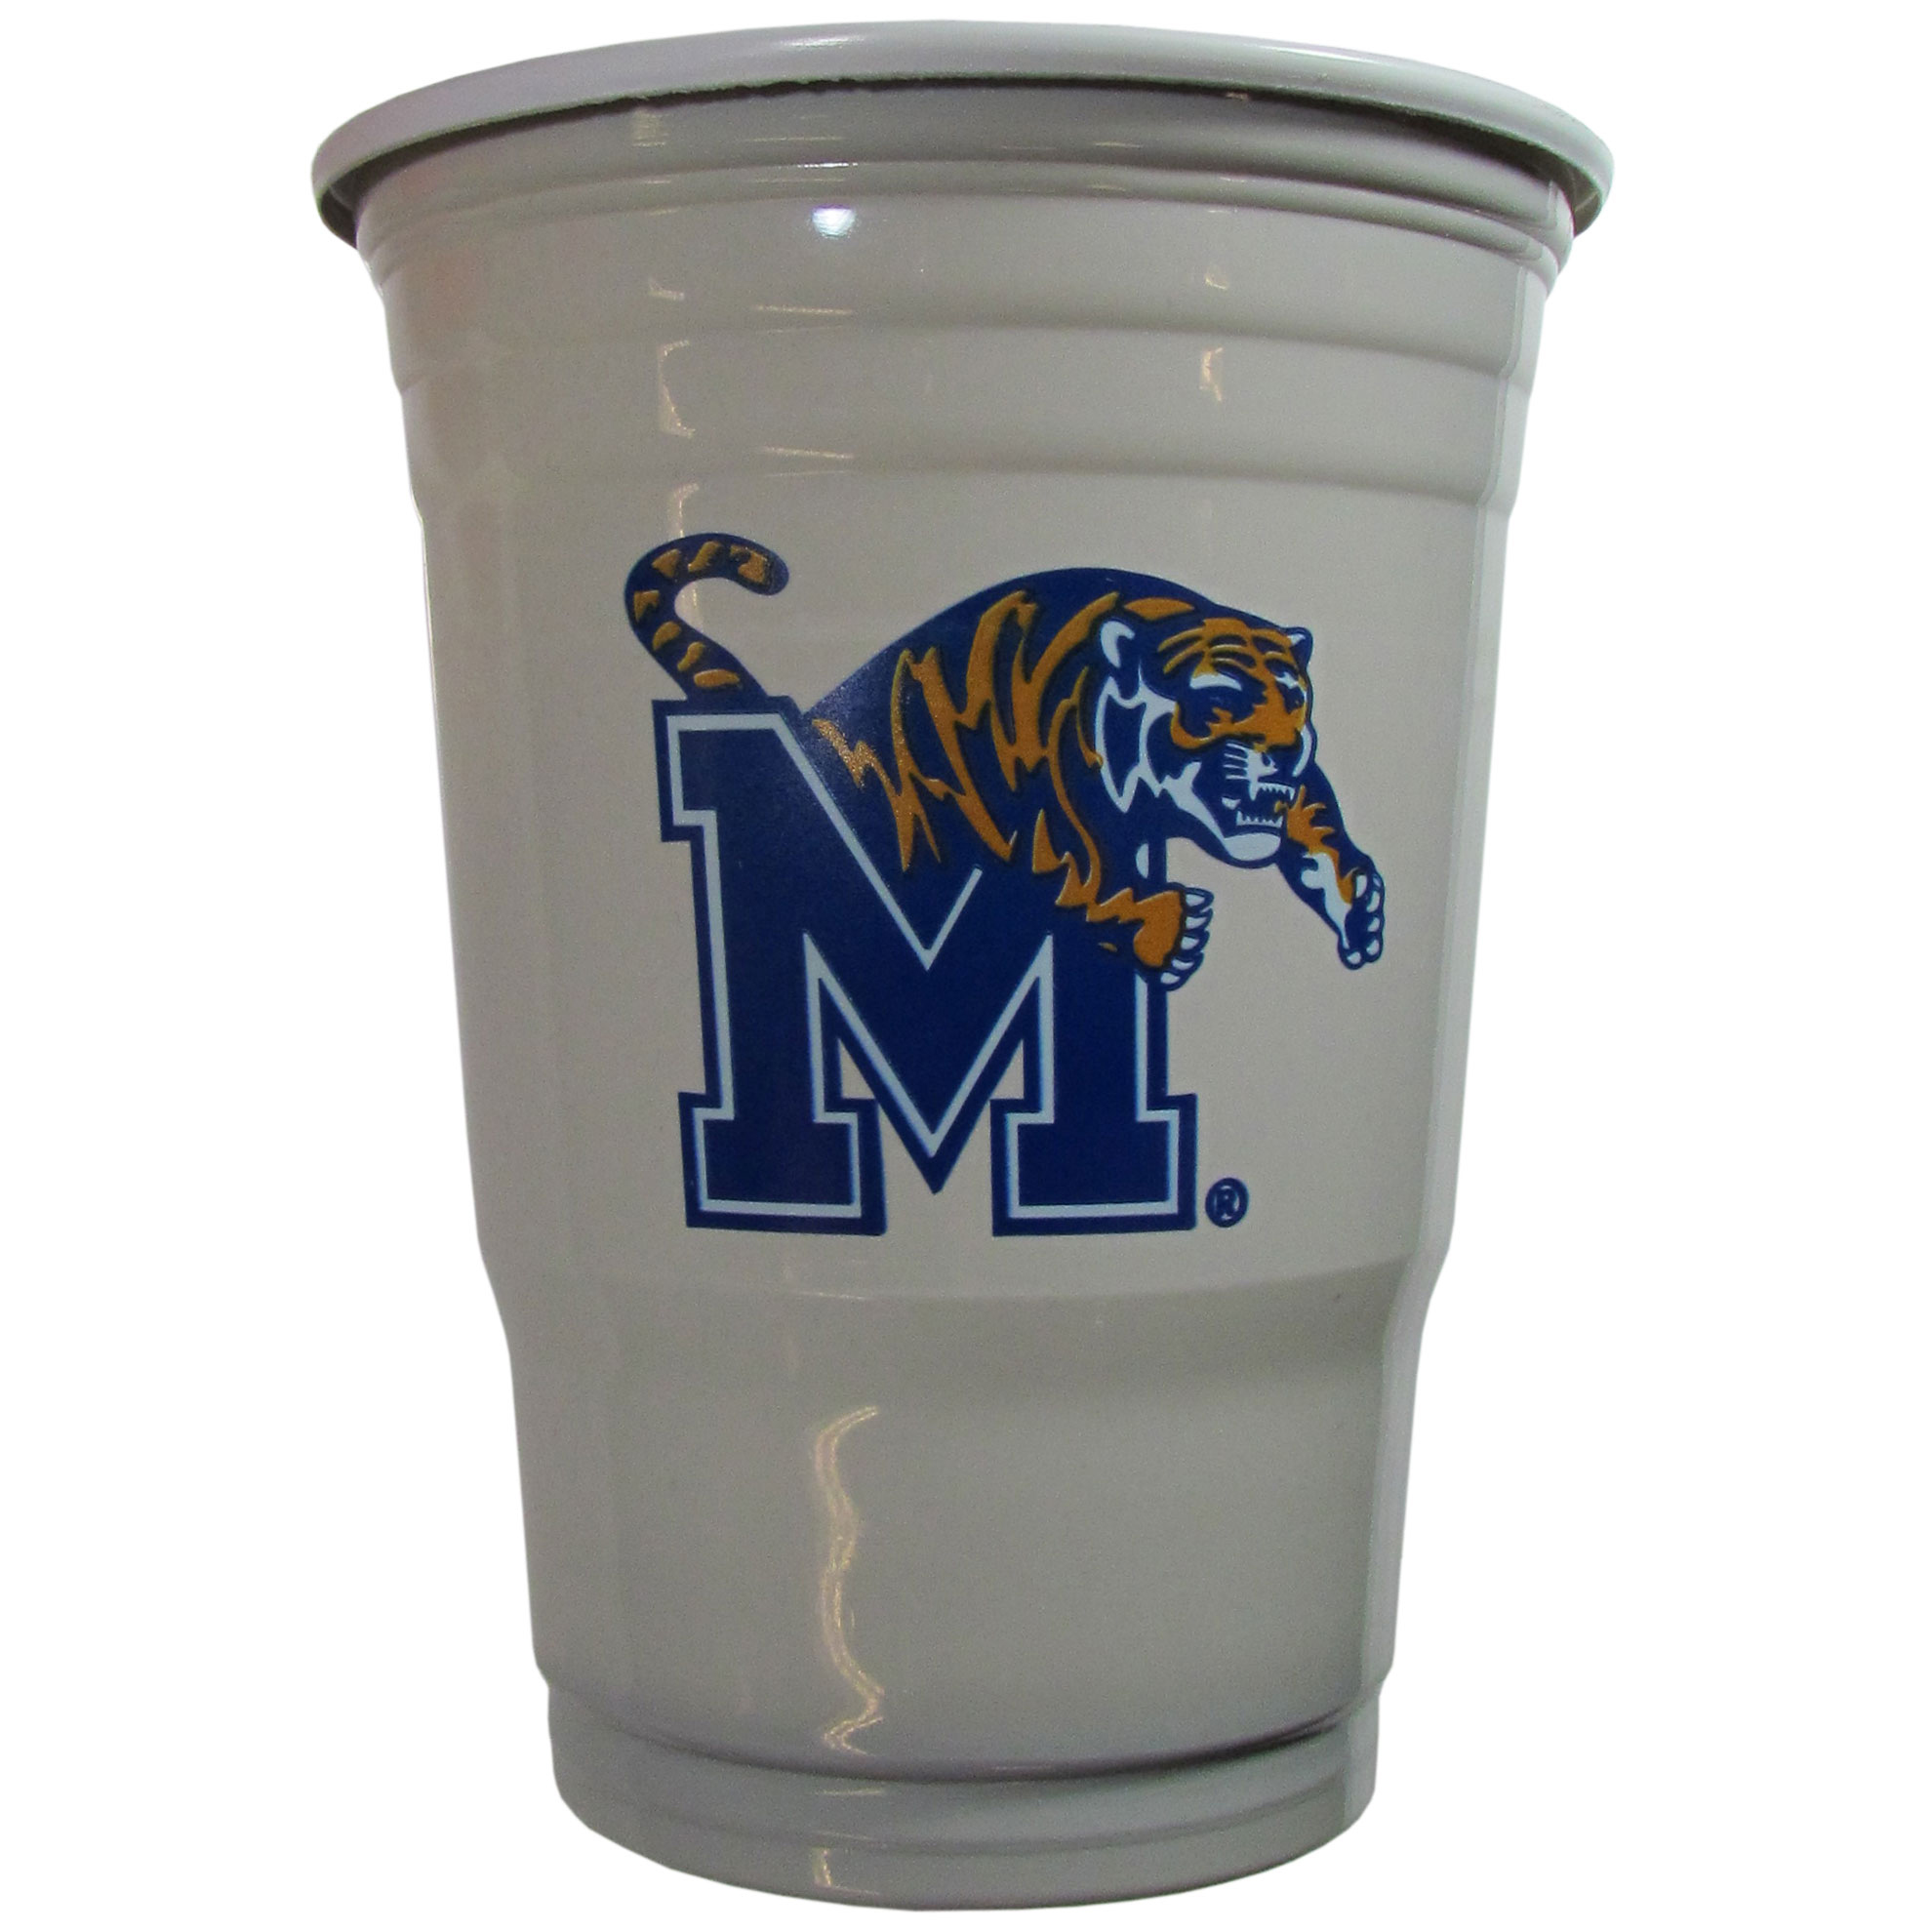 Memphis Tigers Plastic Game Day Cups - Our 18 ounce game day cups are what every tailgating or backyard events needs! The cups feature a big Memphis Tigers logo so you can show off your team pride. The popular 18 ounce size is perfect for drinks or ping pong balls! Sold in sleeves of 18 cups.